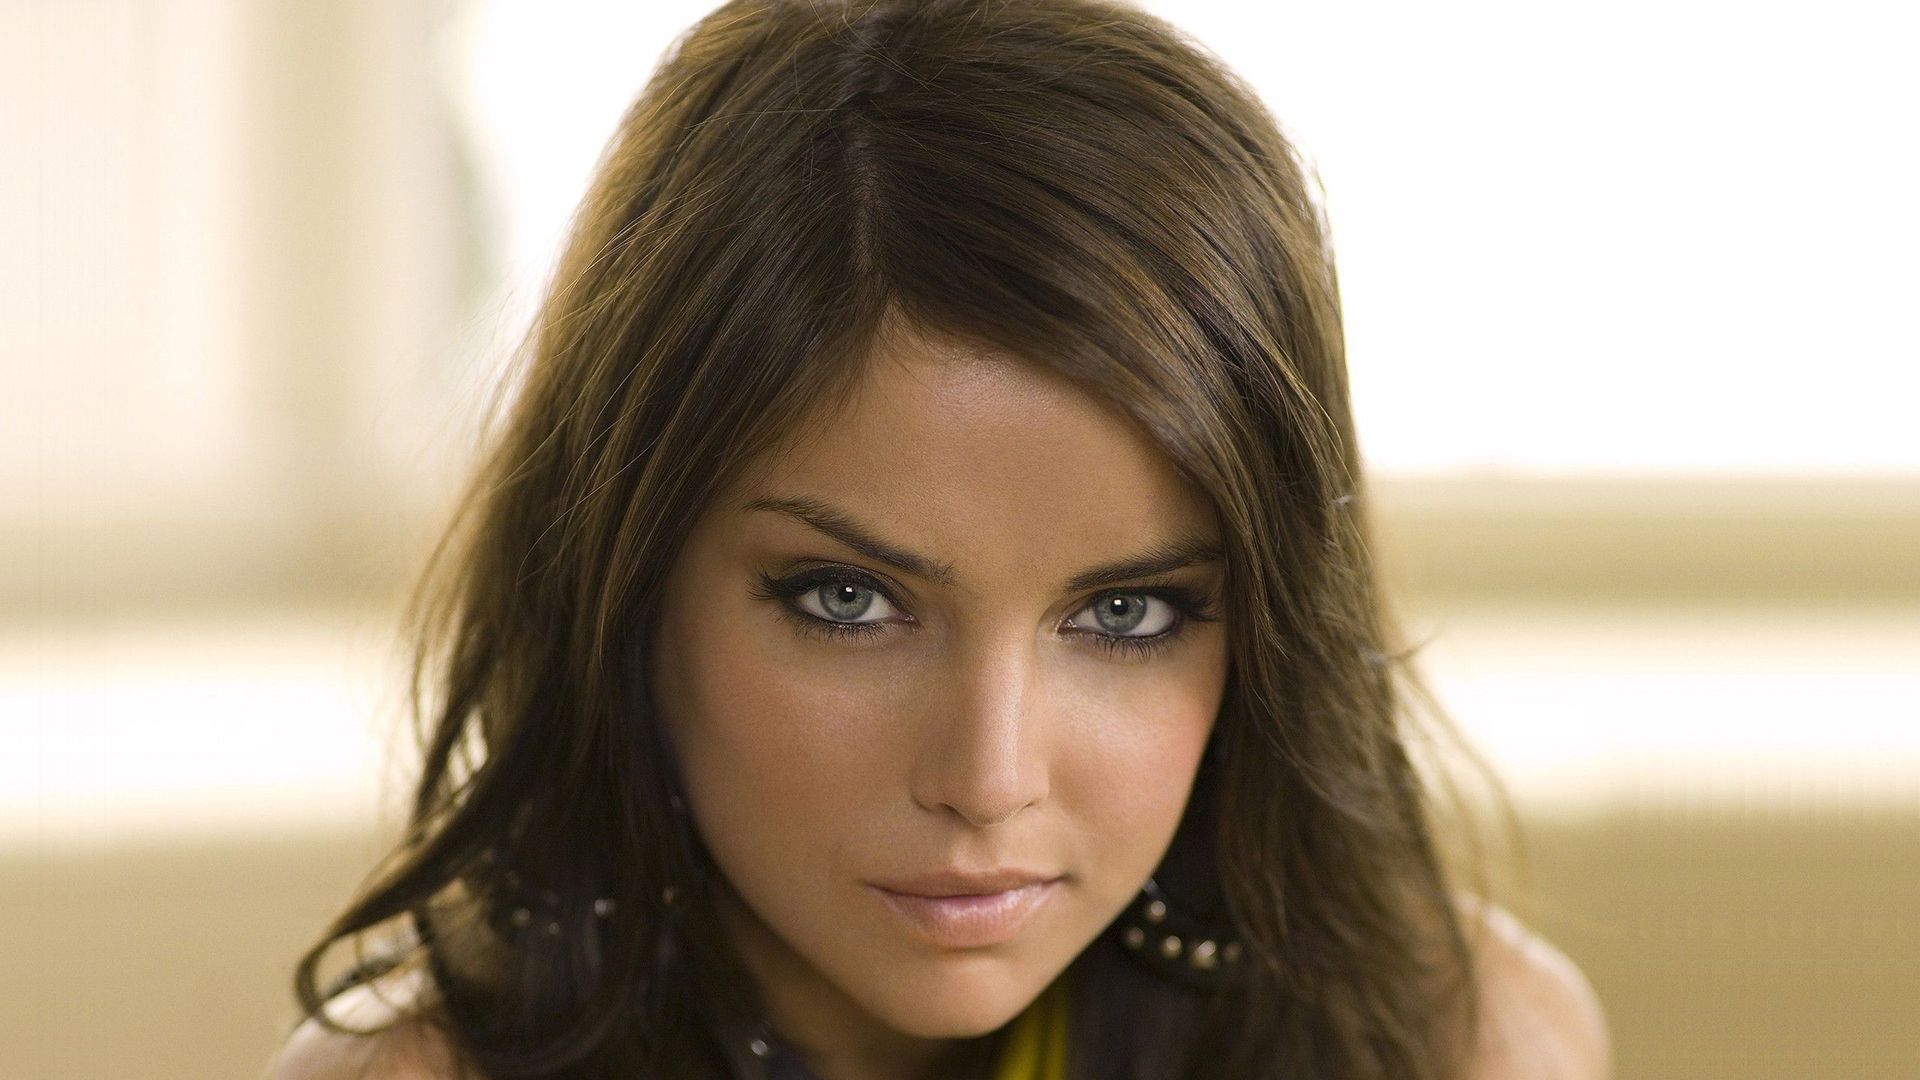 1920x1080 - Jessica Stroup Wallpapers 14